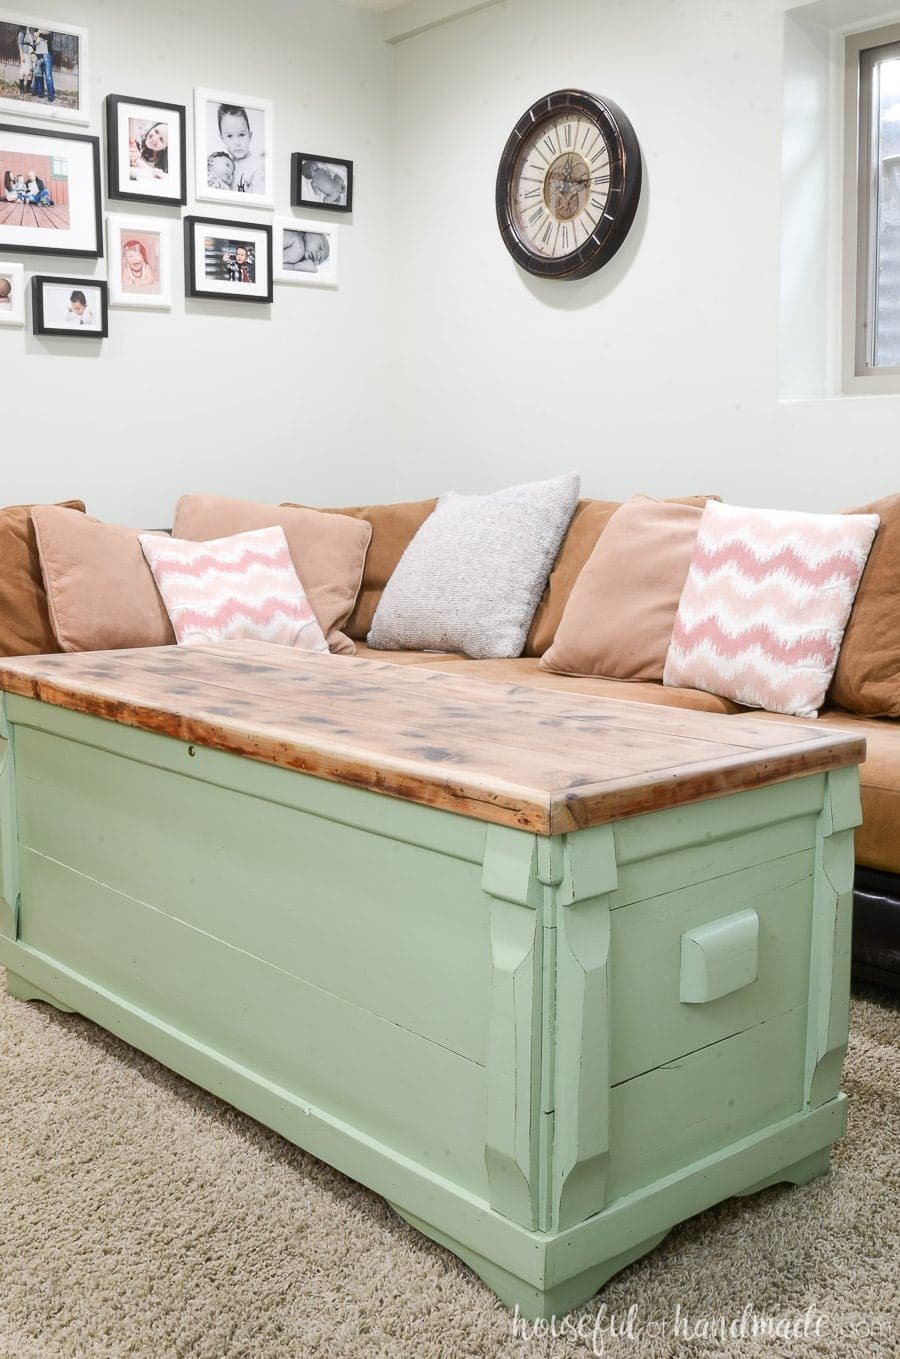 Moss green painted storage chest with raw cedar wood top as a coffee table in a living room.